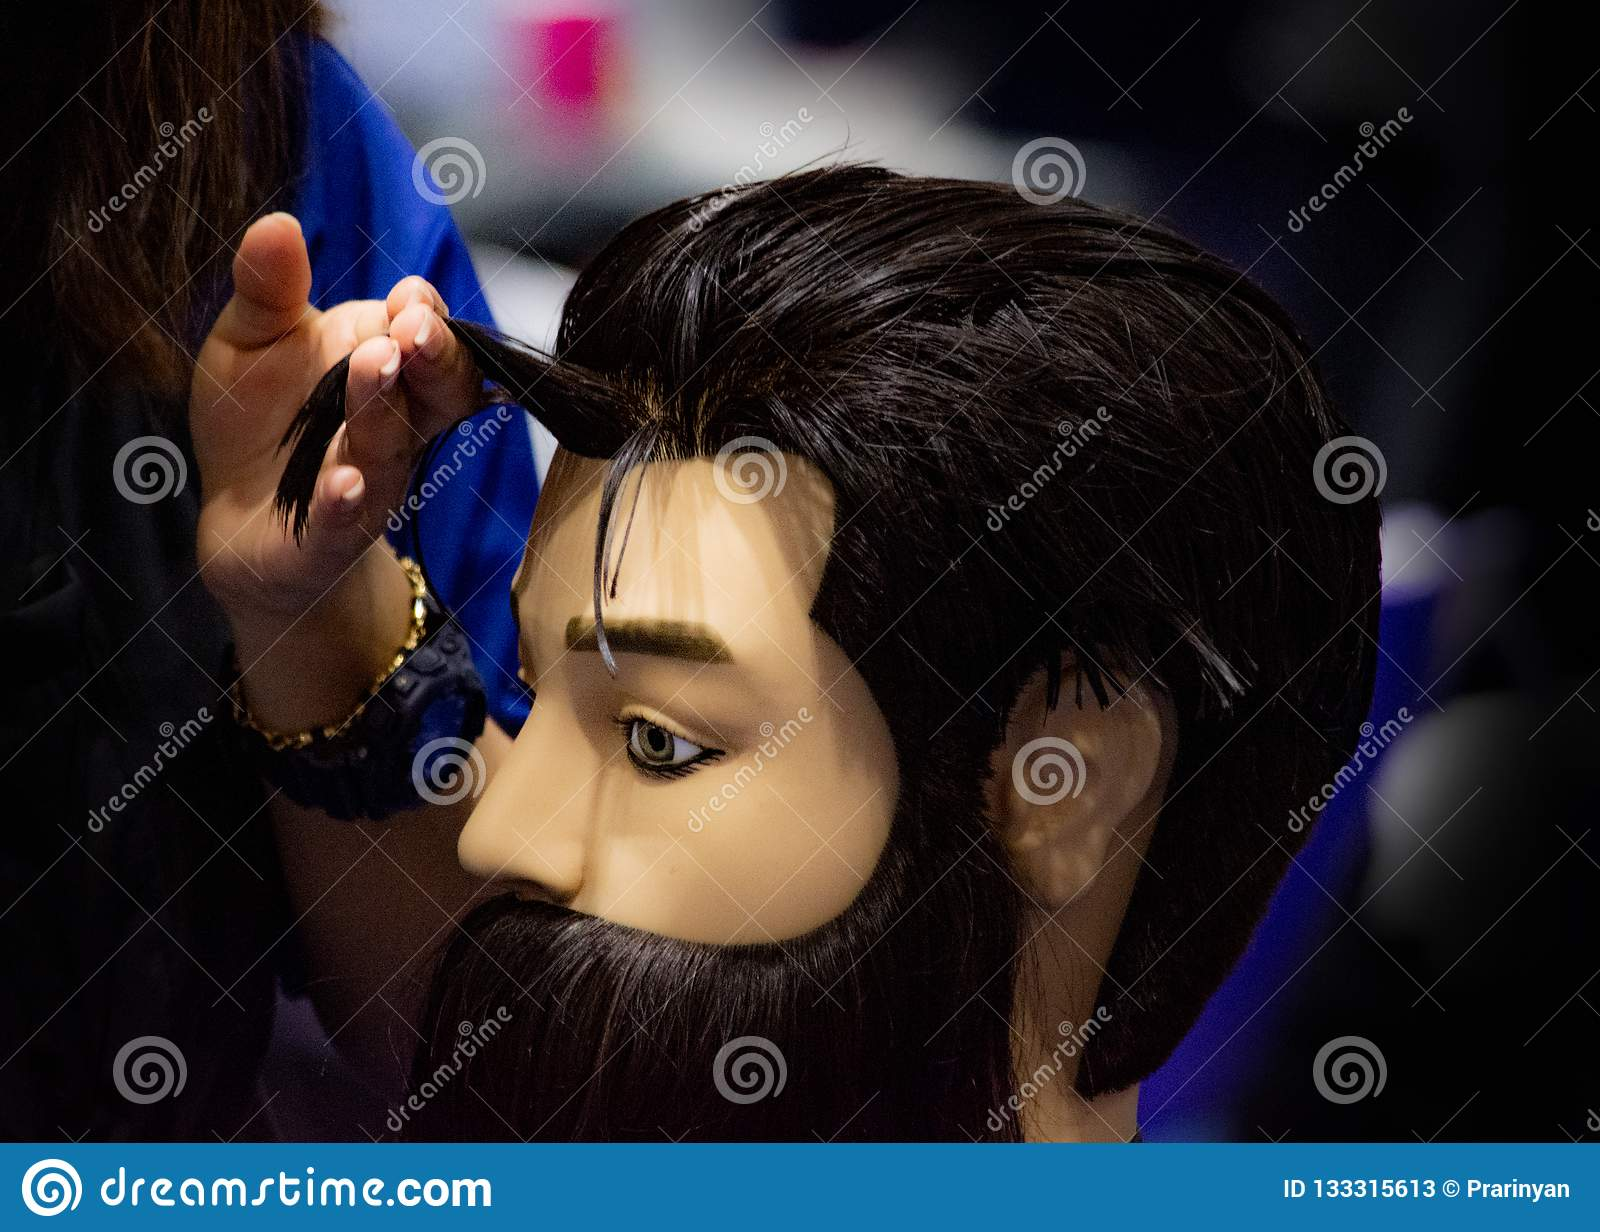 Hairstyles On Dummy Head Of Hair Salon Stock Image - Image of doll ...